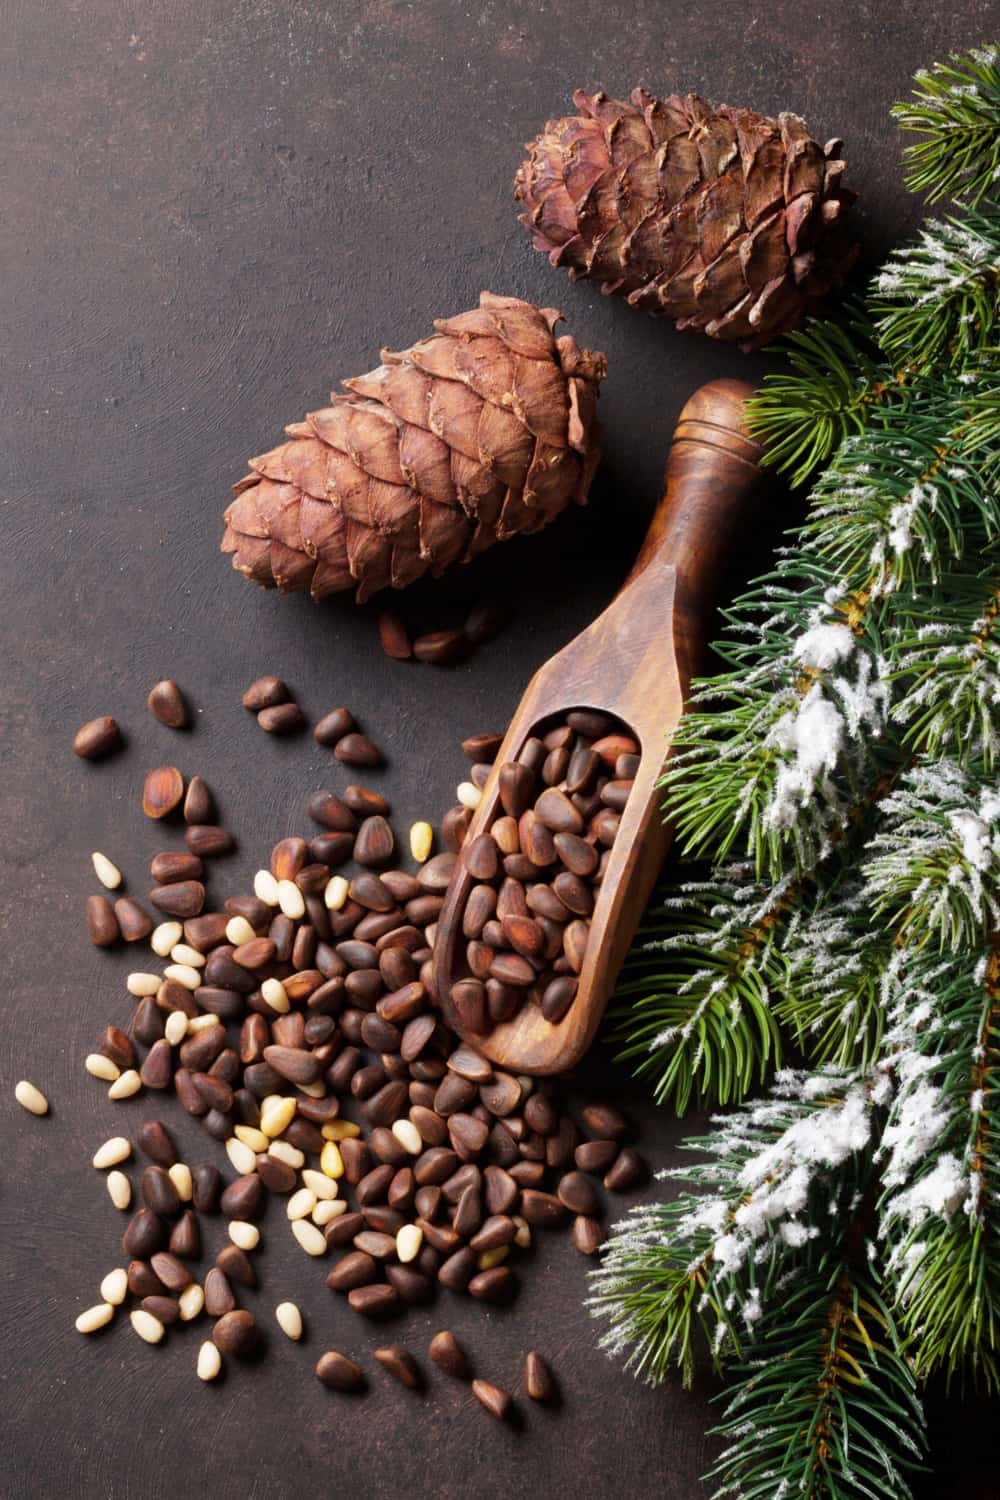 Tips to Store Pine Nuts